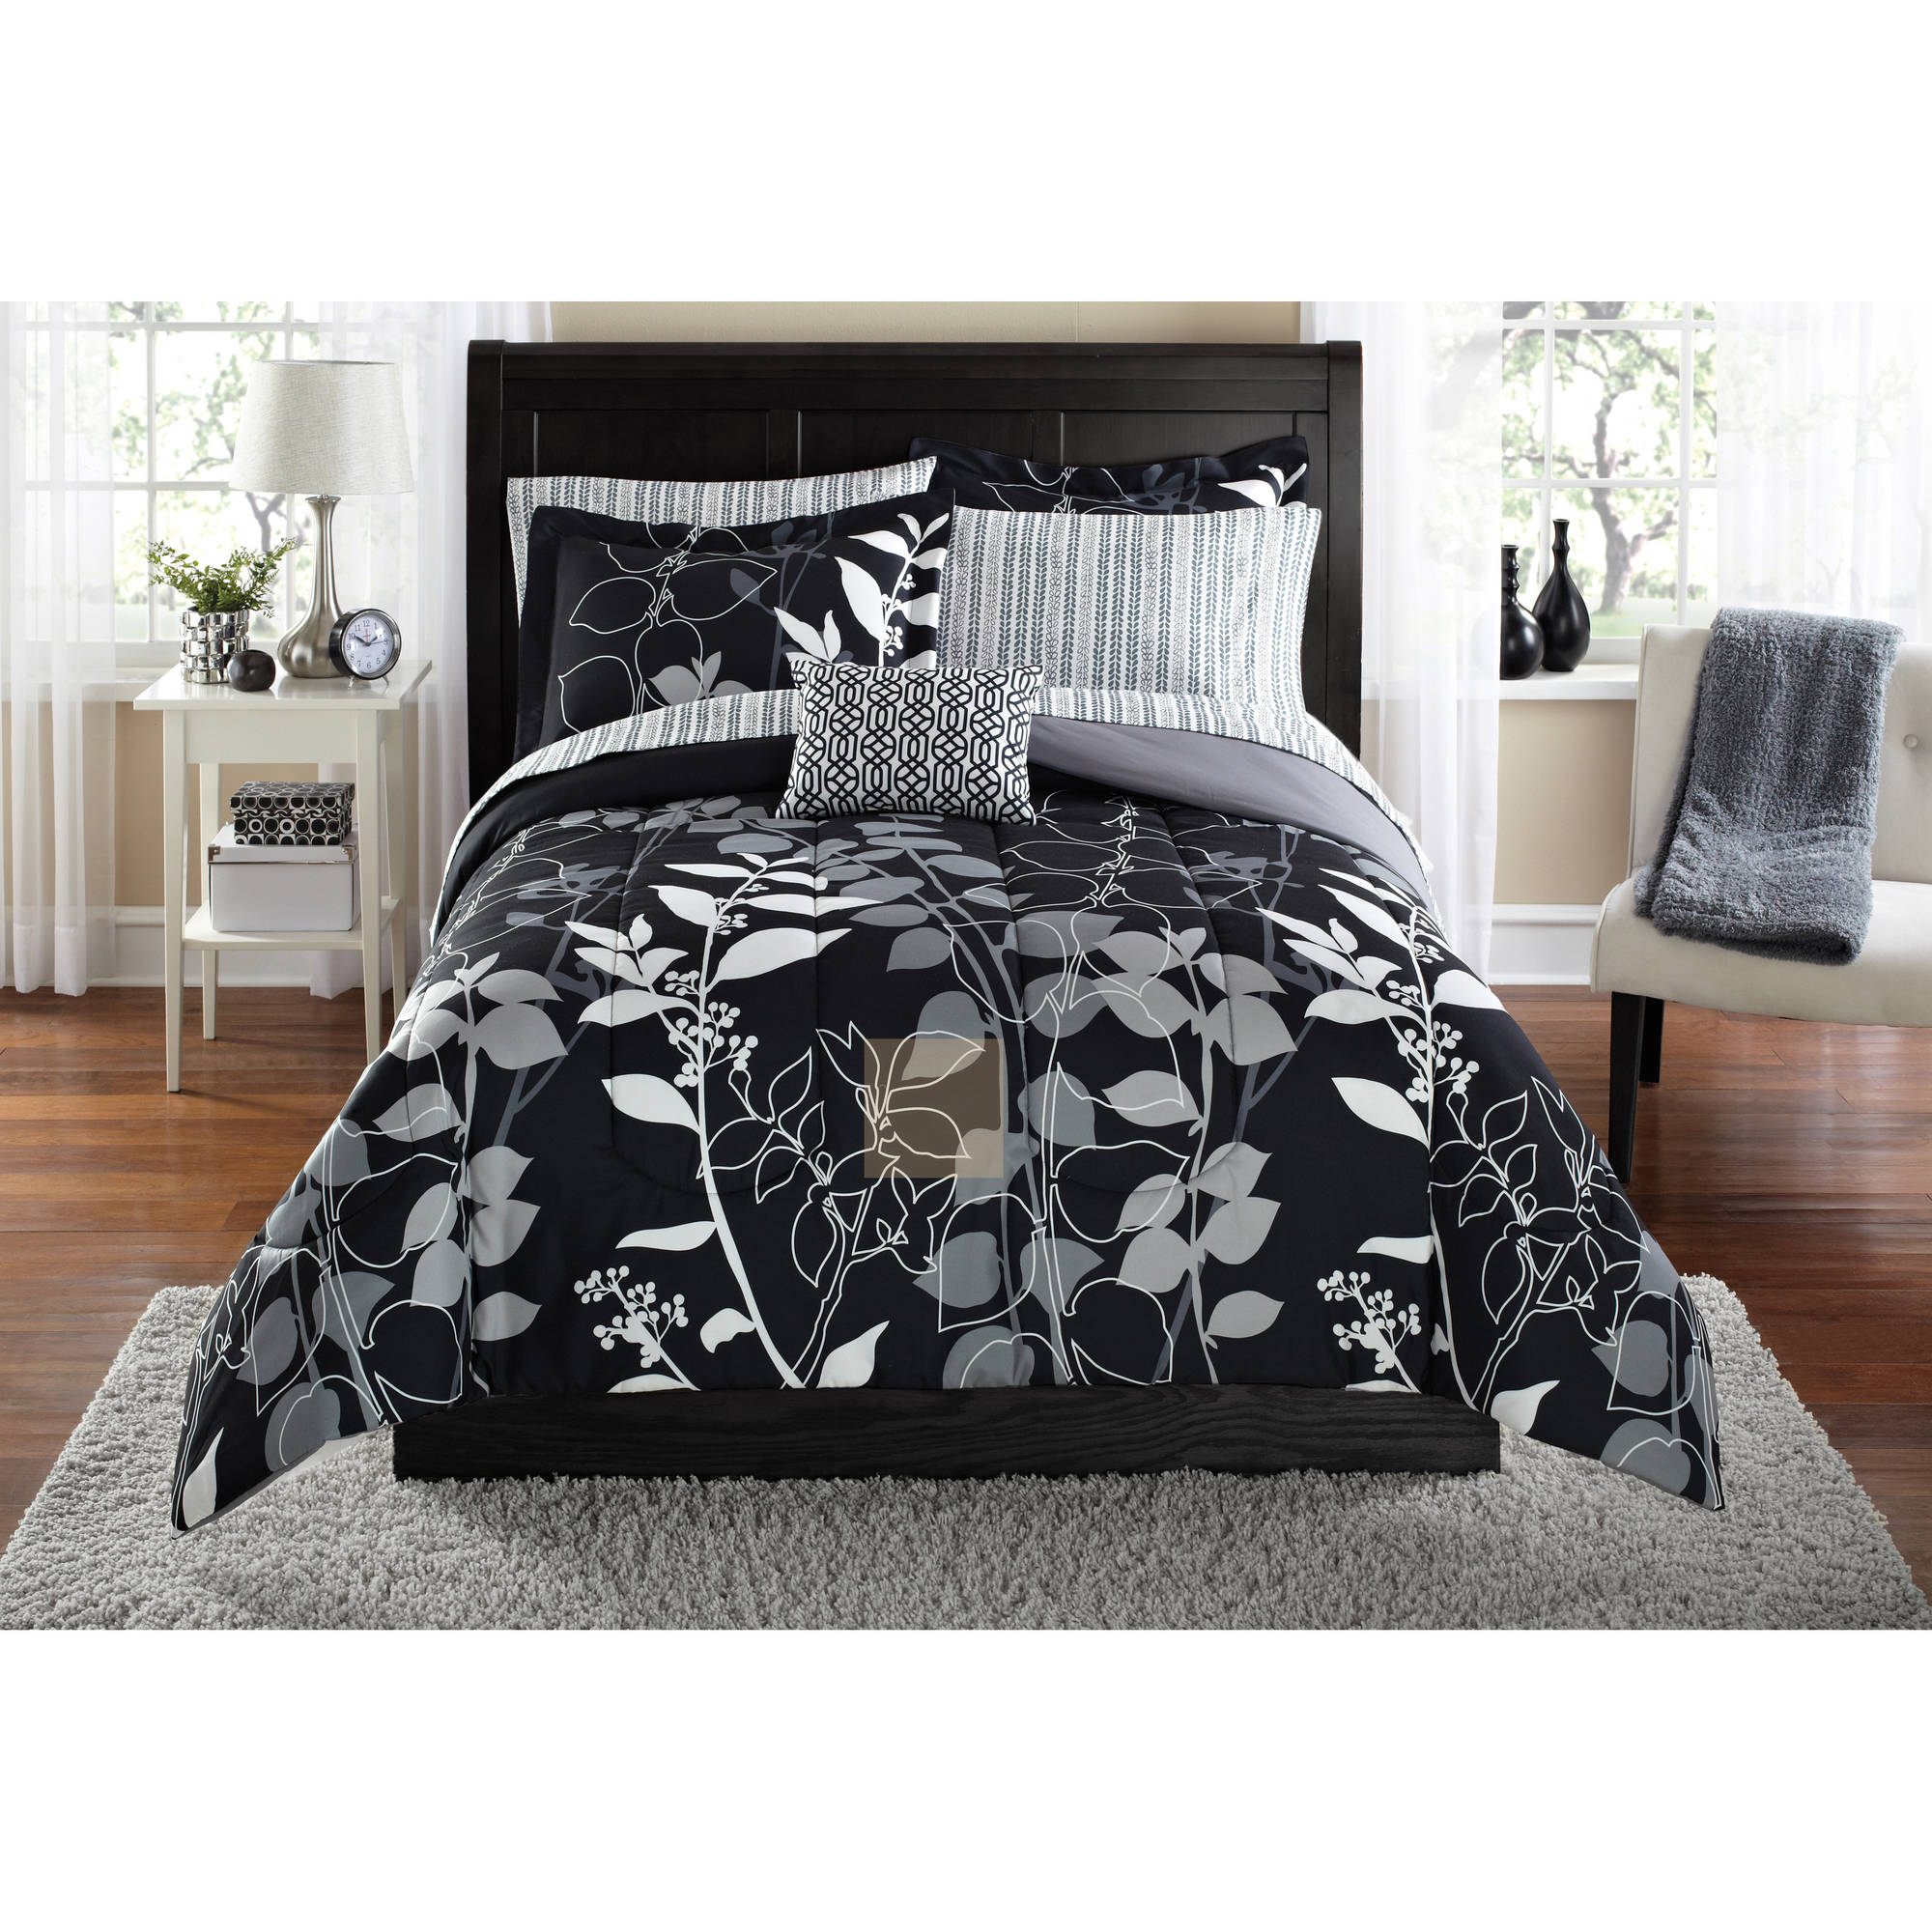 Bed sheet set black and white - Bed Sheet Set Black And White 25